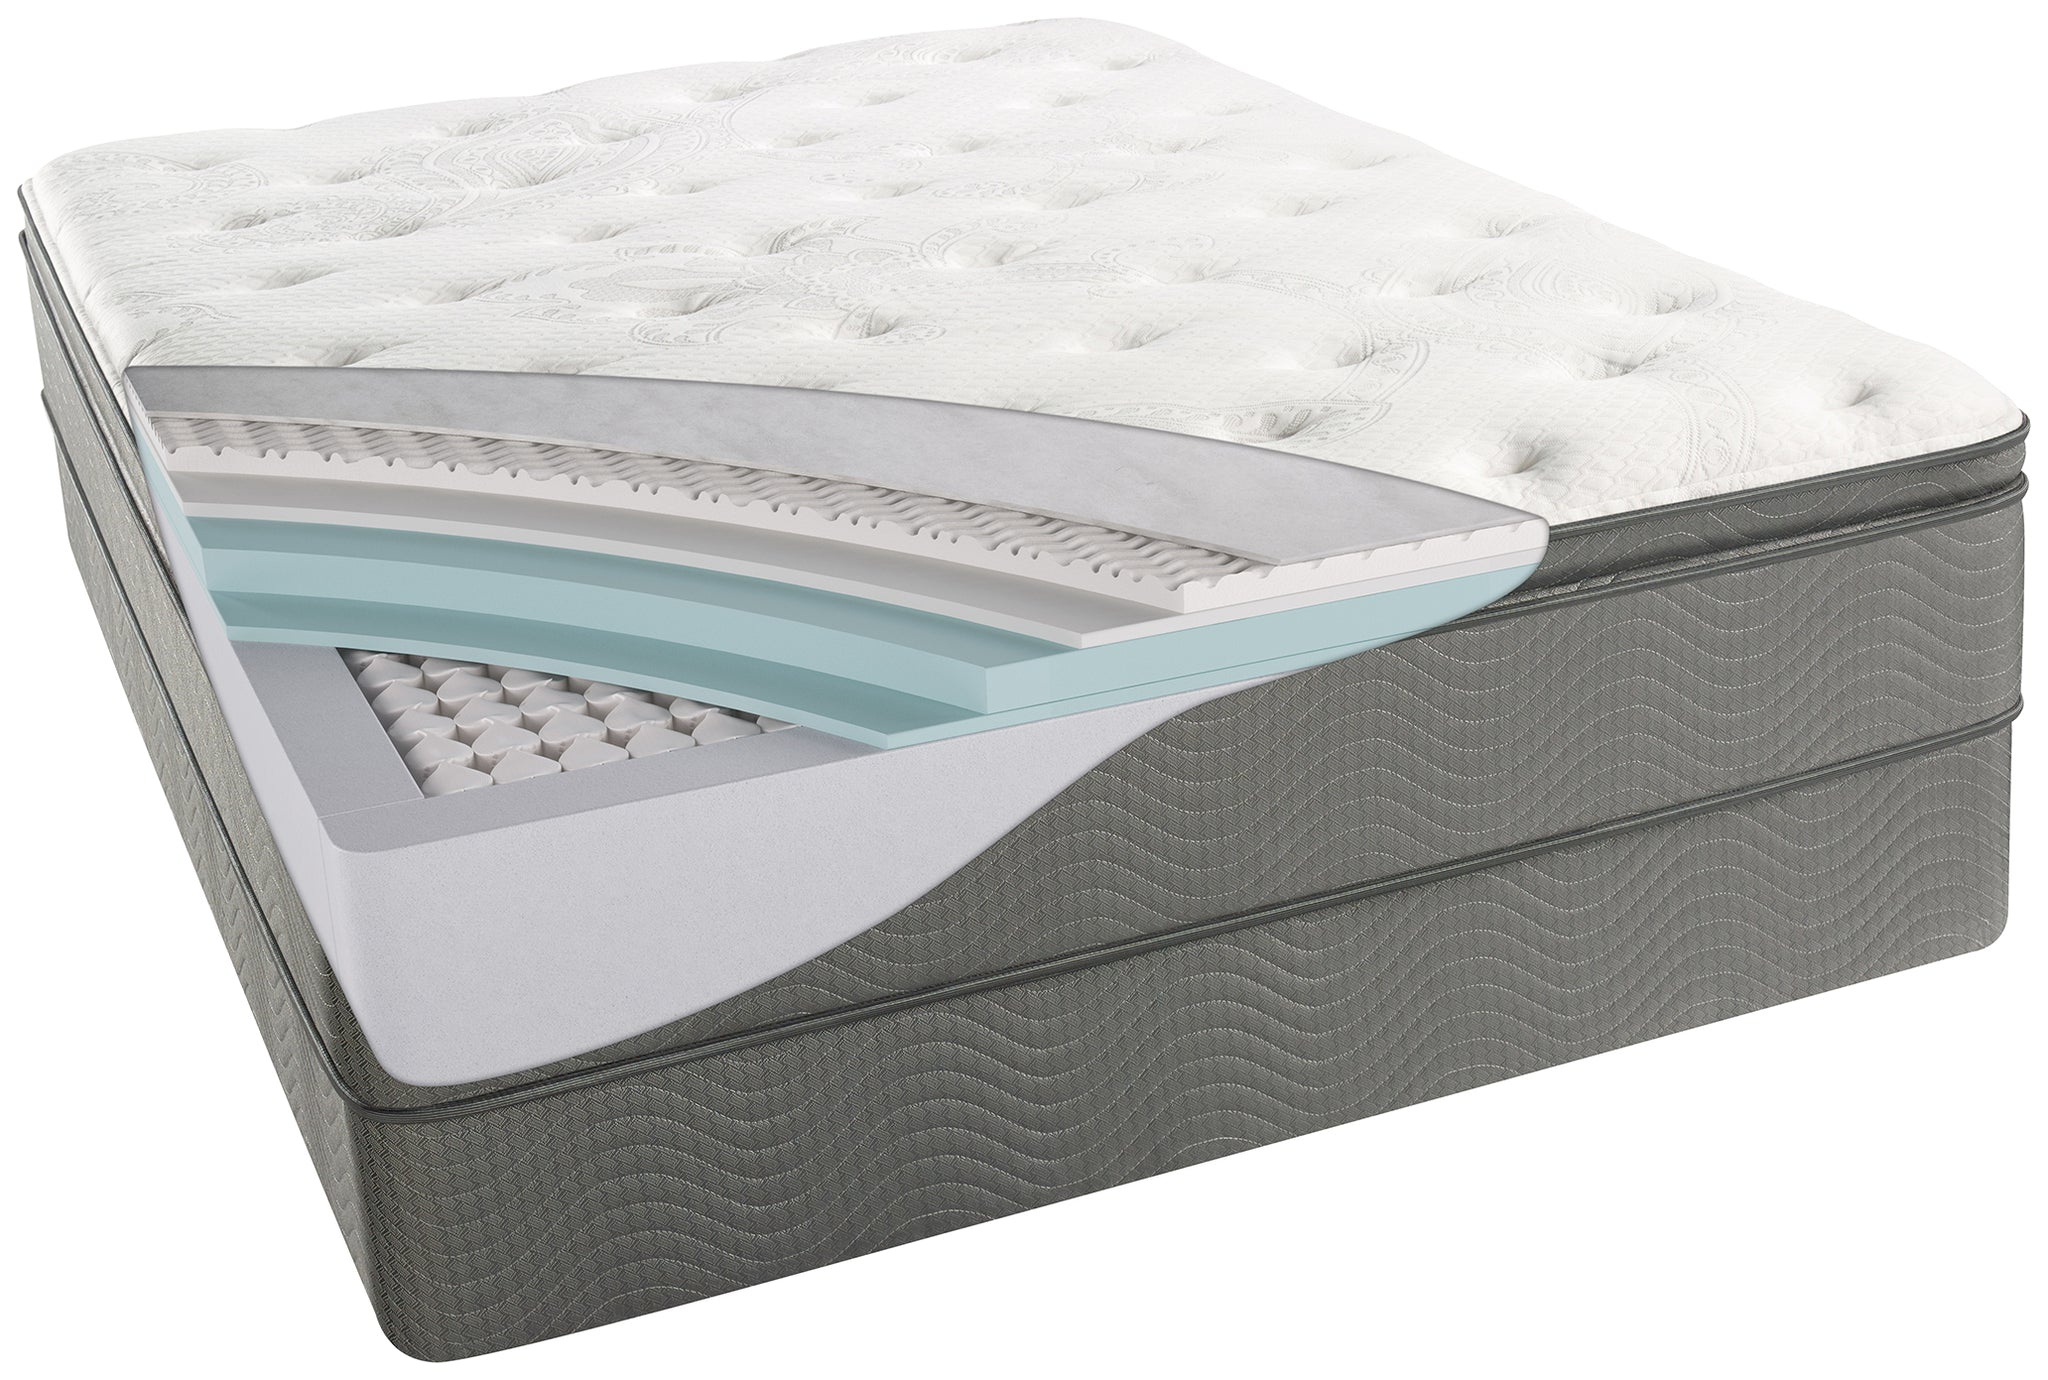 of topper foam unique memory top inch awesome serta ultimate mattress best fort pillow visco